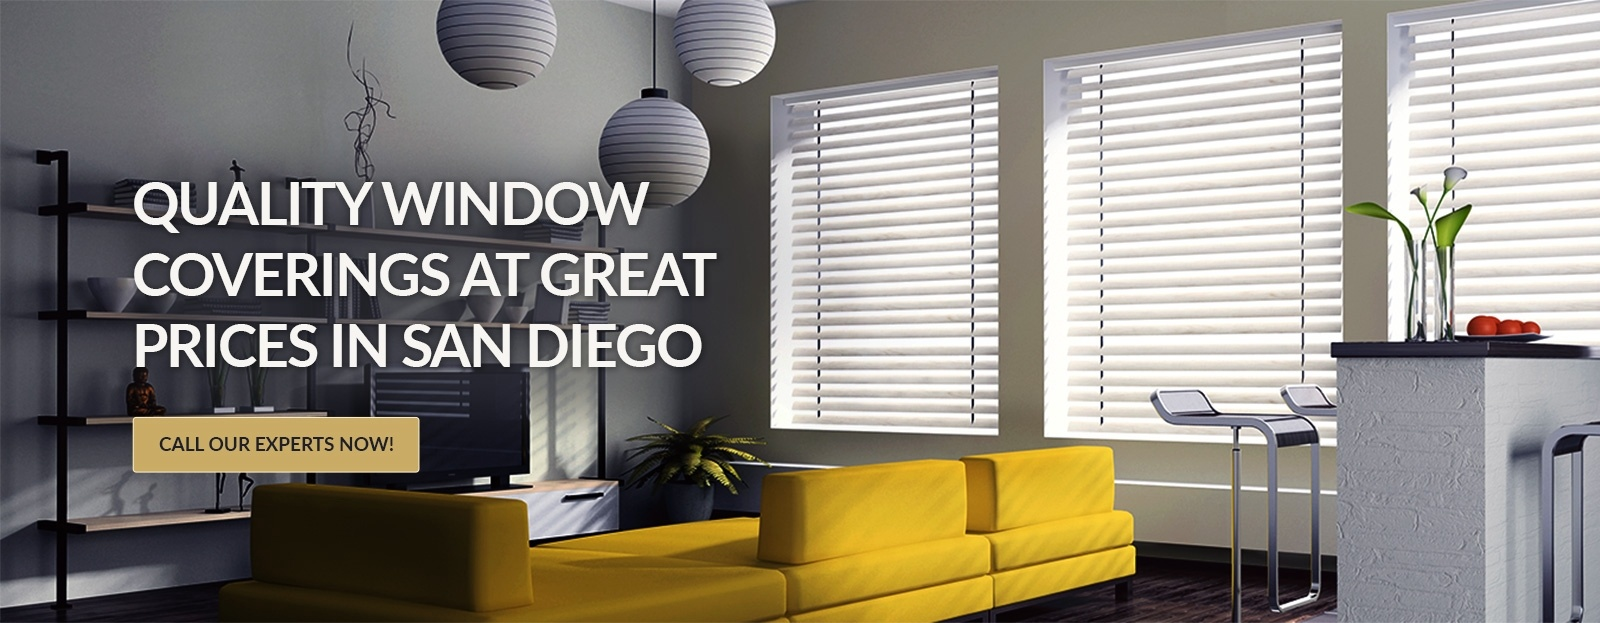 Window treatment company san diego